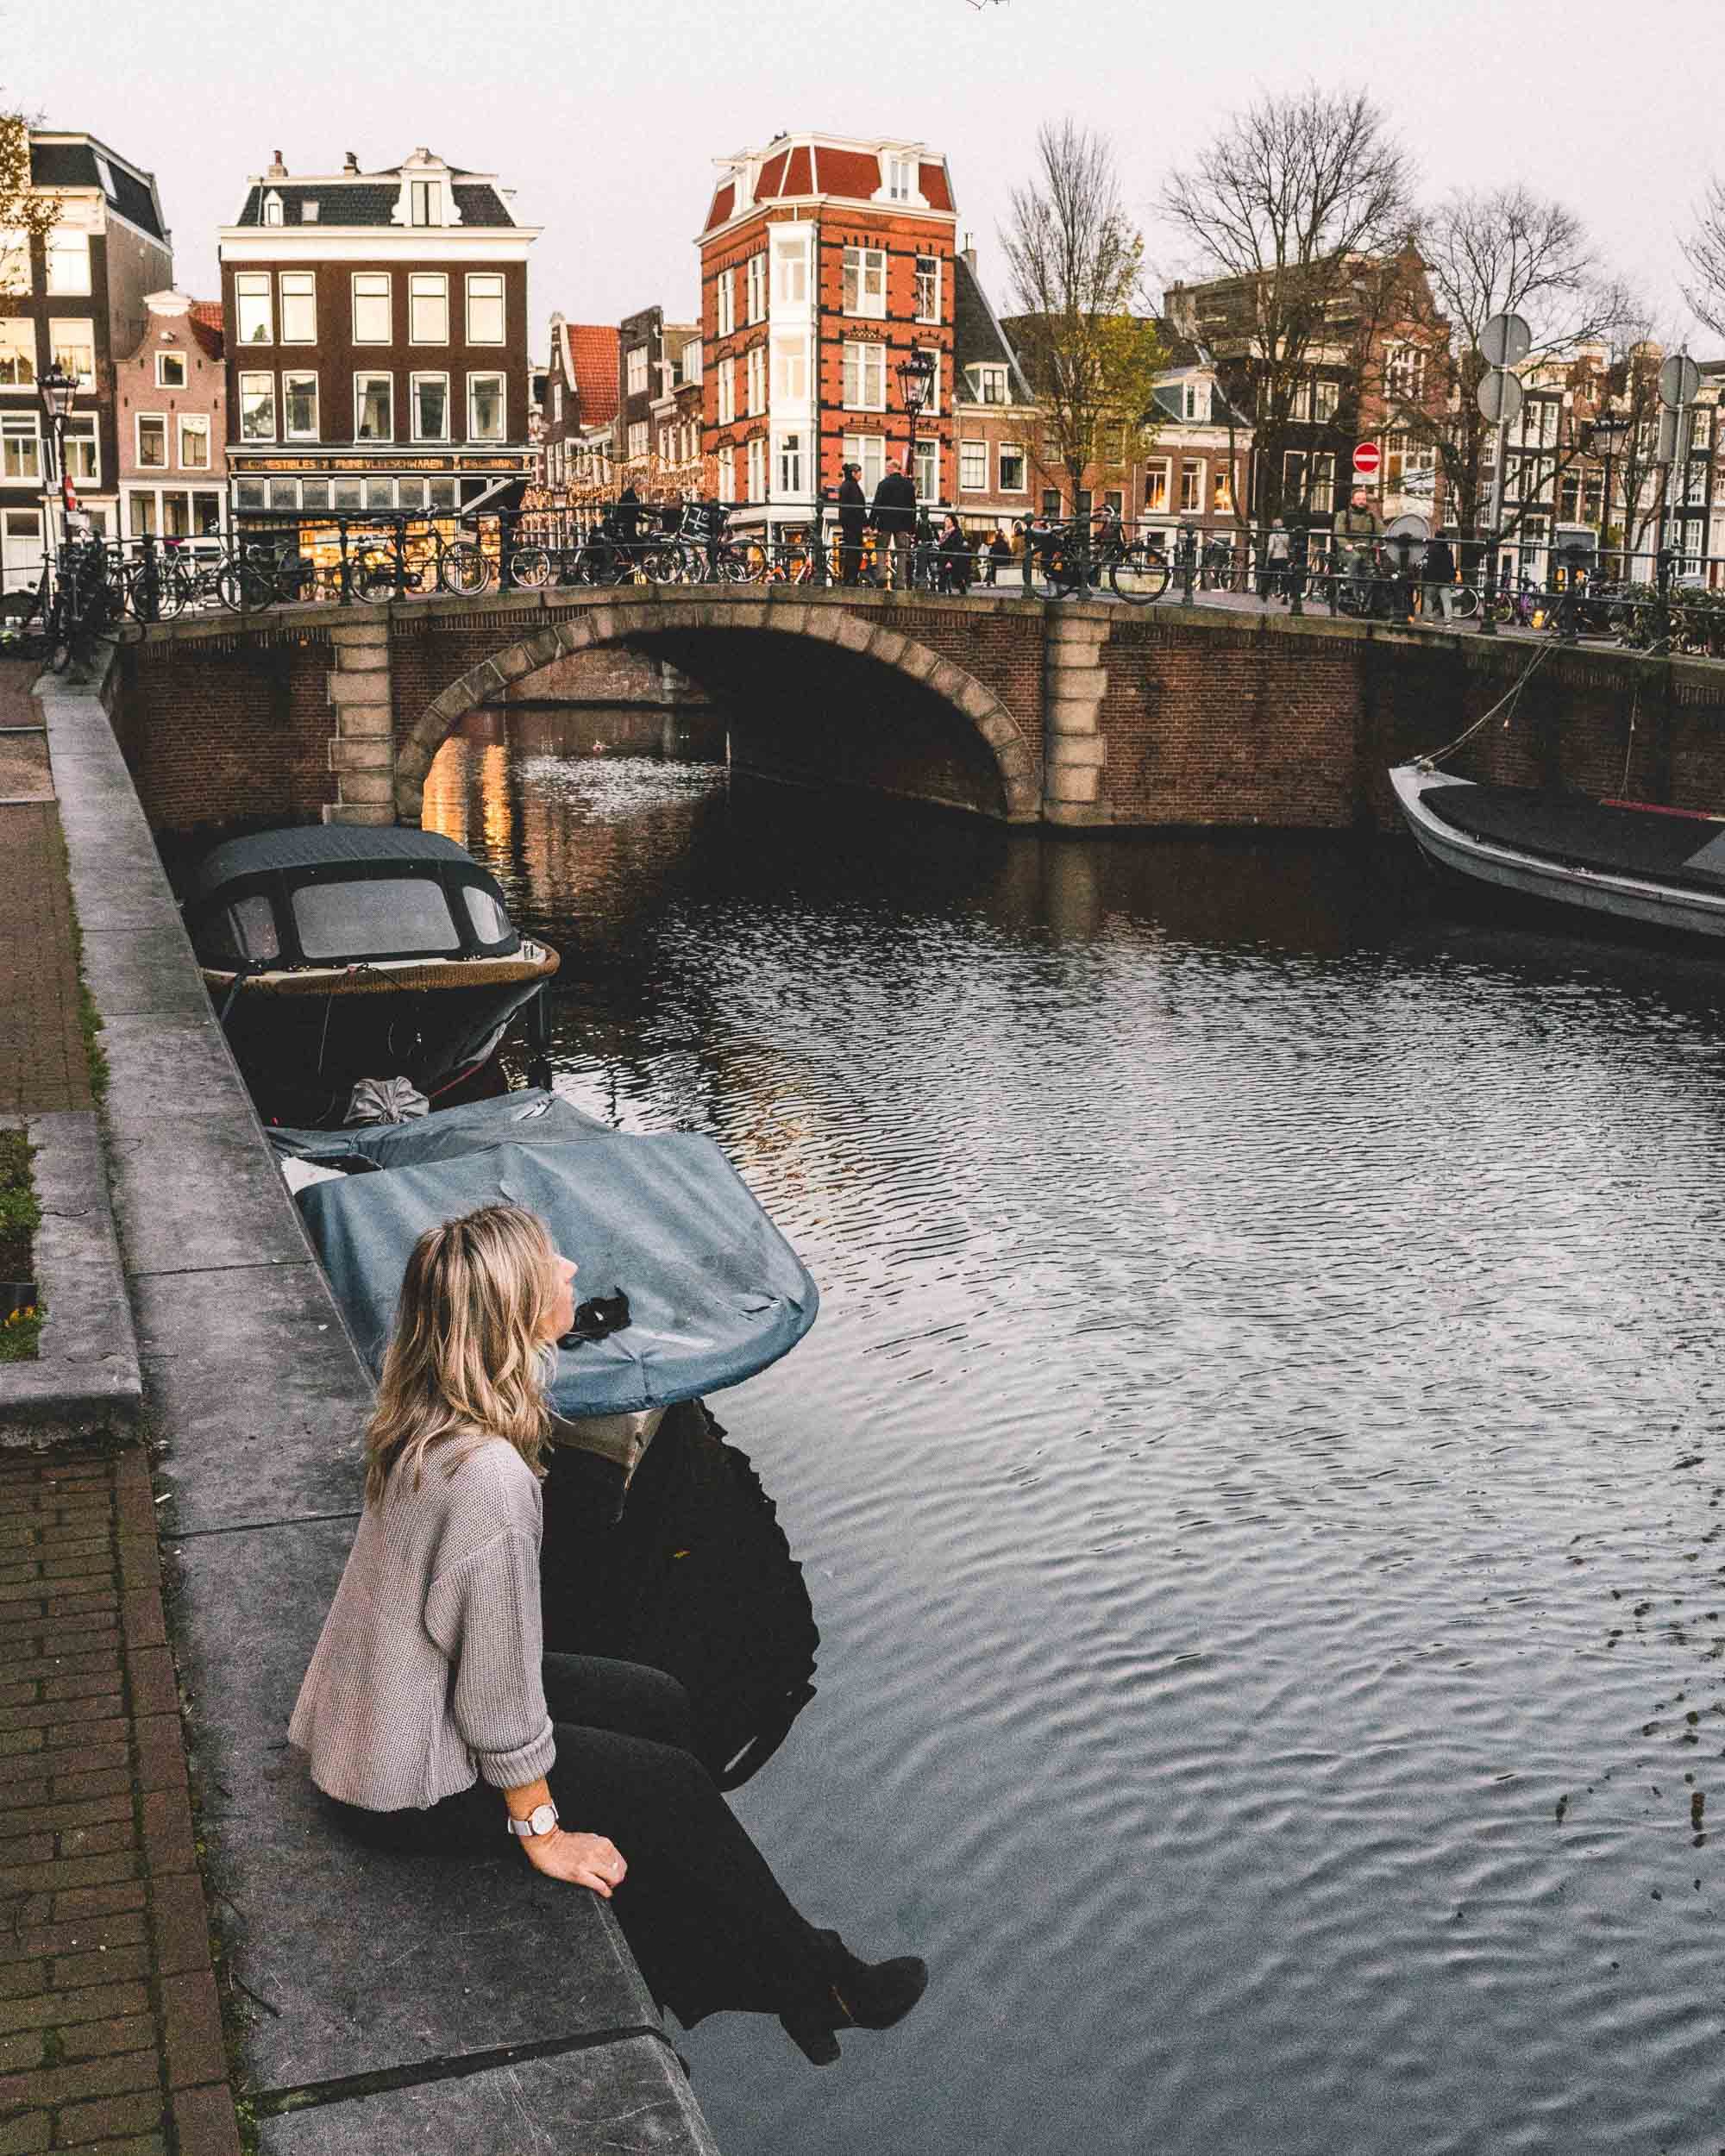 Selena Taylor Travel Blogger behind Find Us Lost in Amsterdam, The Netherlands